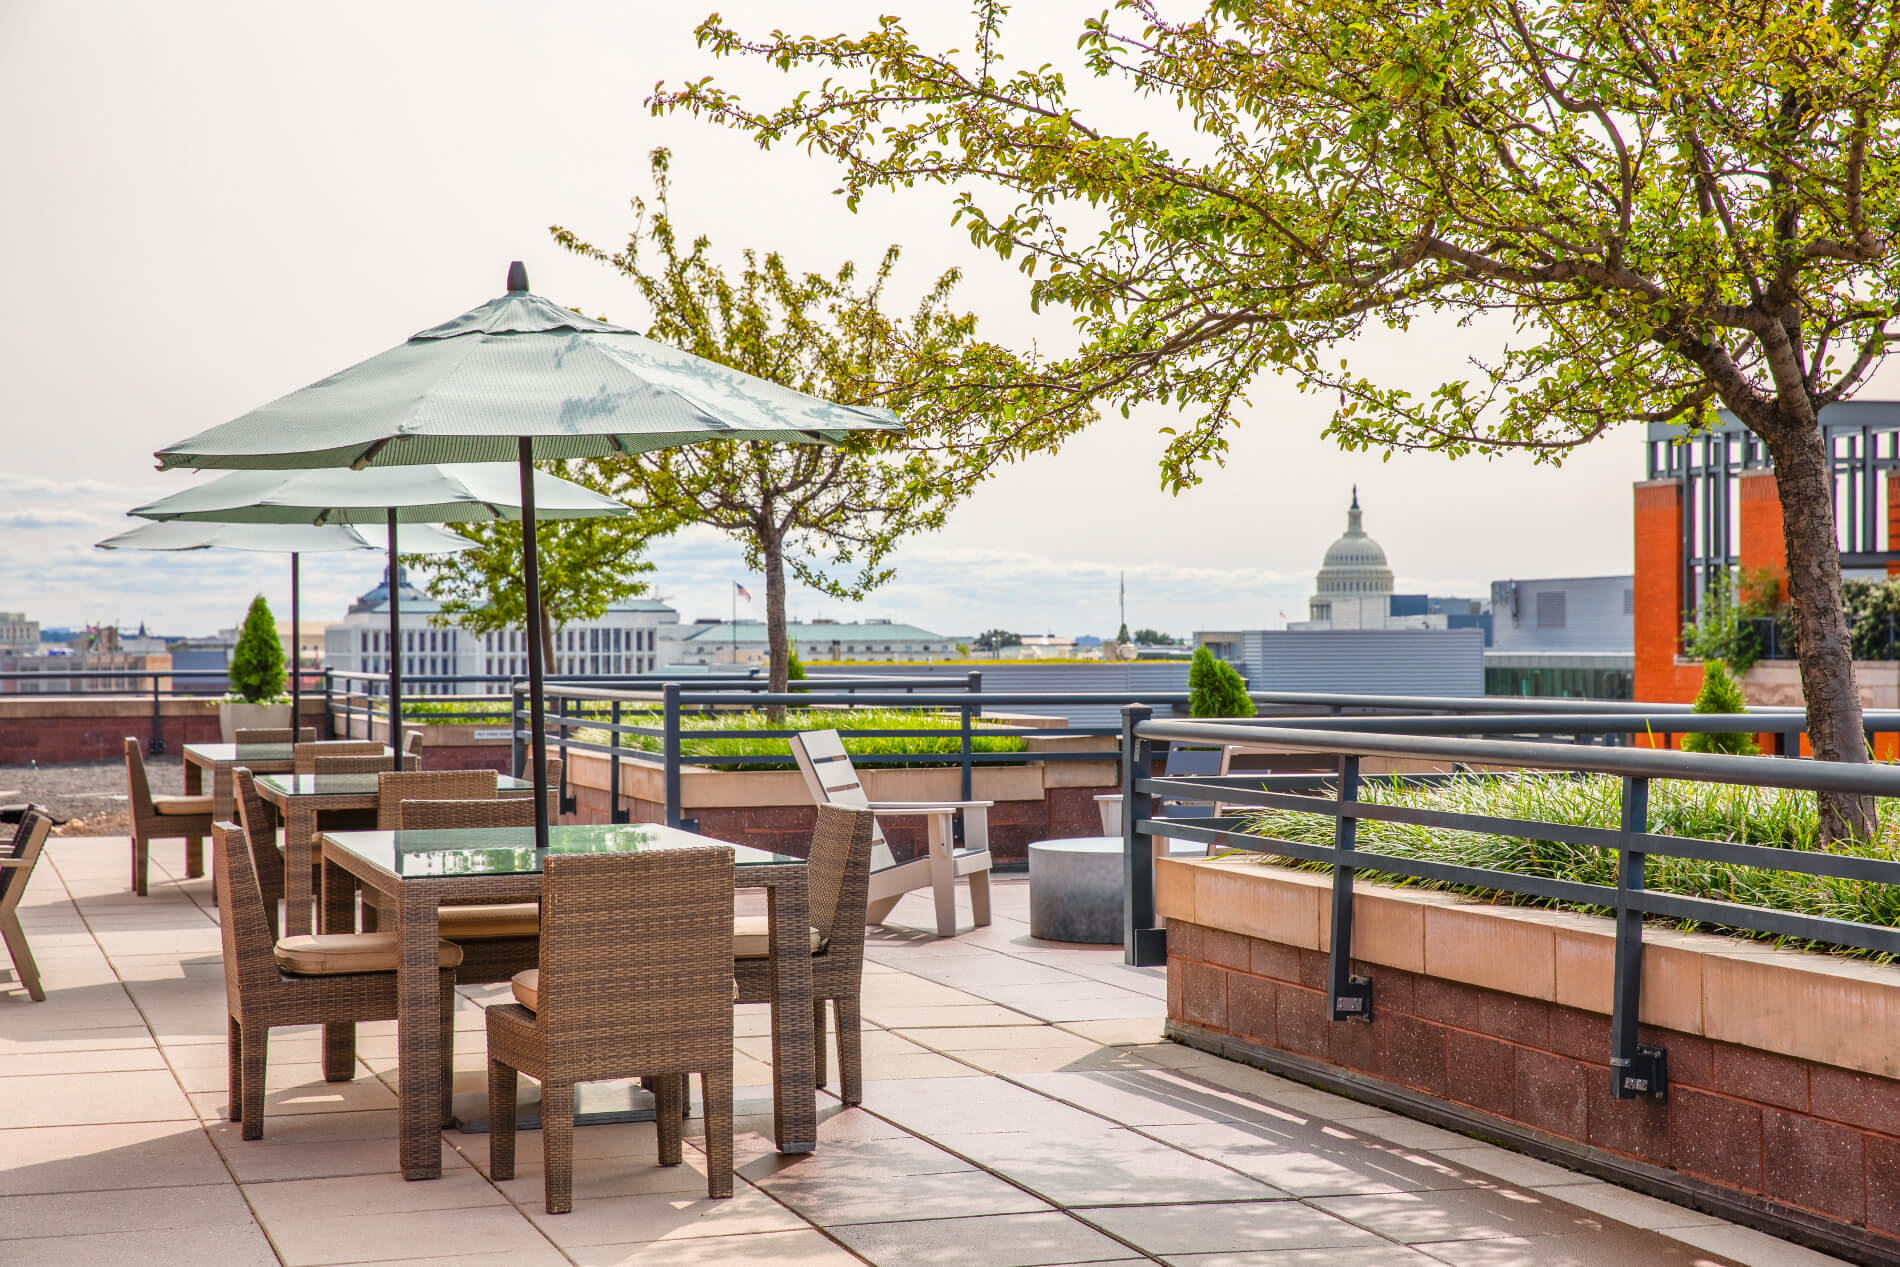 Rooftop tables and umbrellas with view of Capitol dome in background